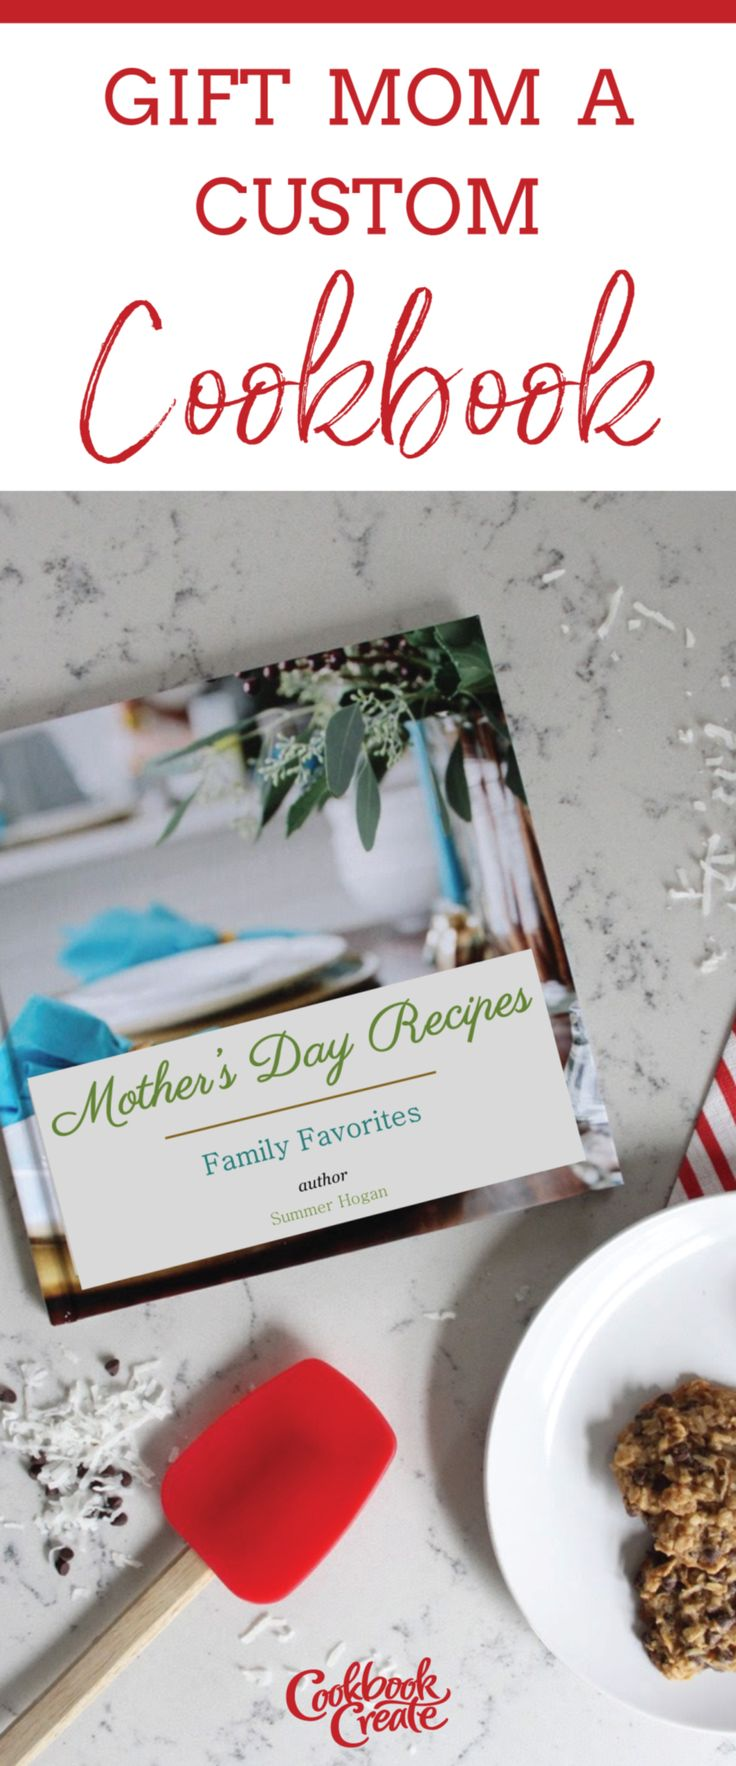 Make your own Cookbook with personal recipes and custom photos. This recipe book is a perfect gift for mom! Mother's Day is right around the corner. Hardcover or Spiral bound, this is the ultimate gift idea for home cooks featuring all your favorite family recipes.